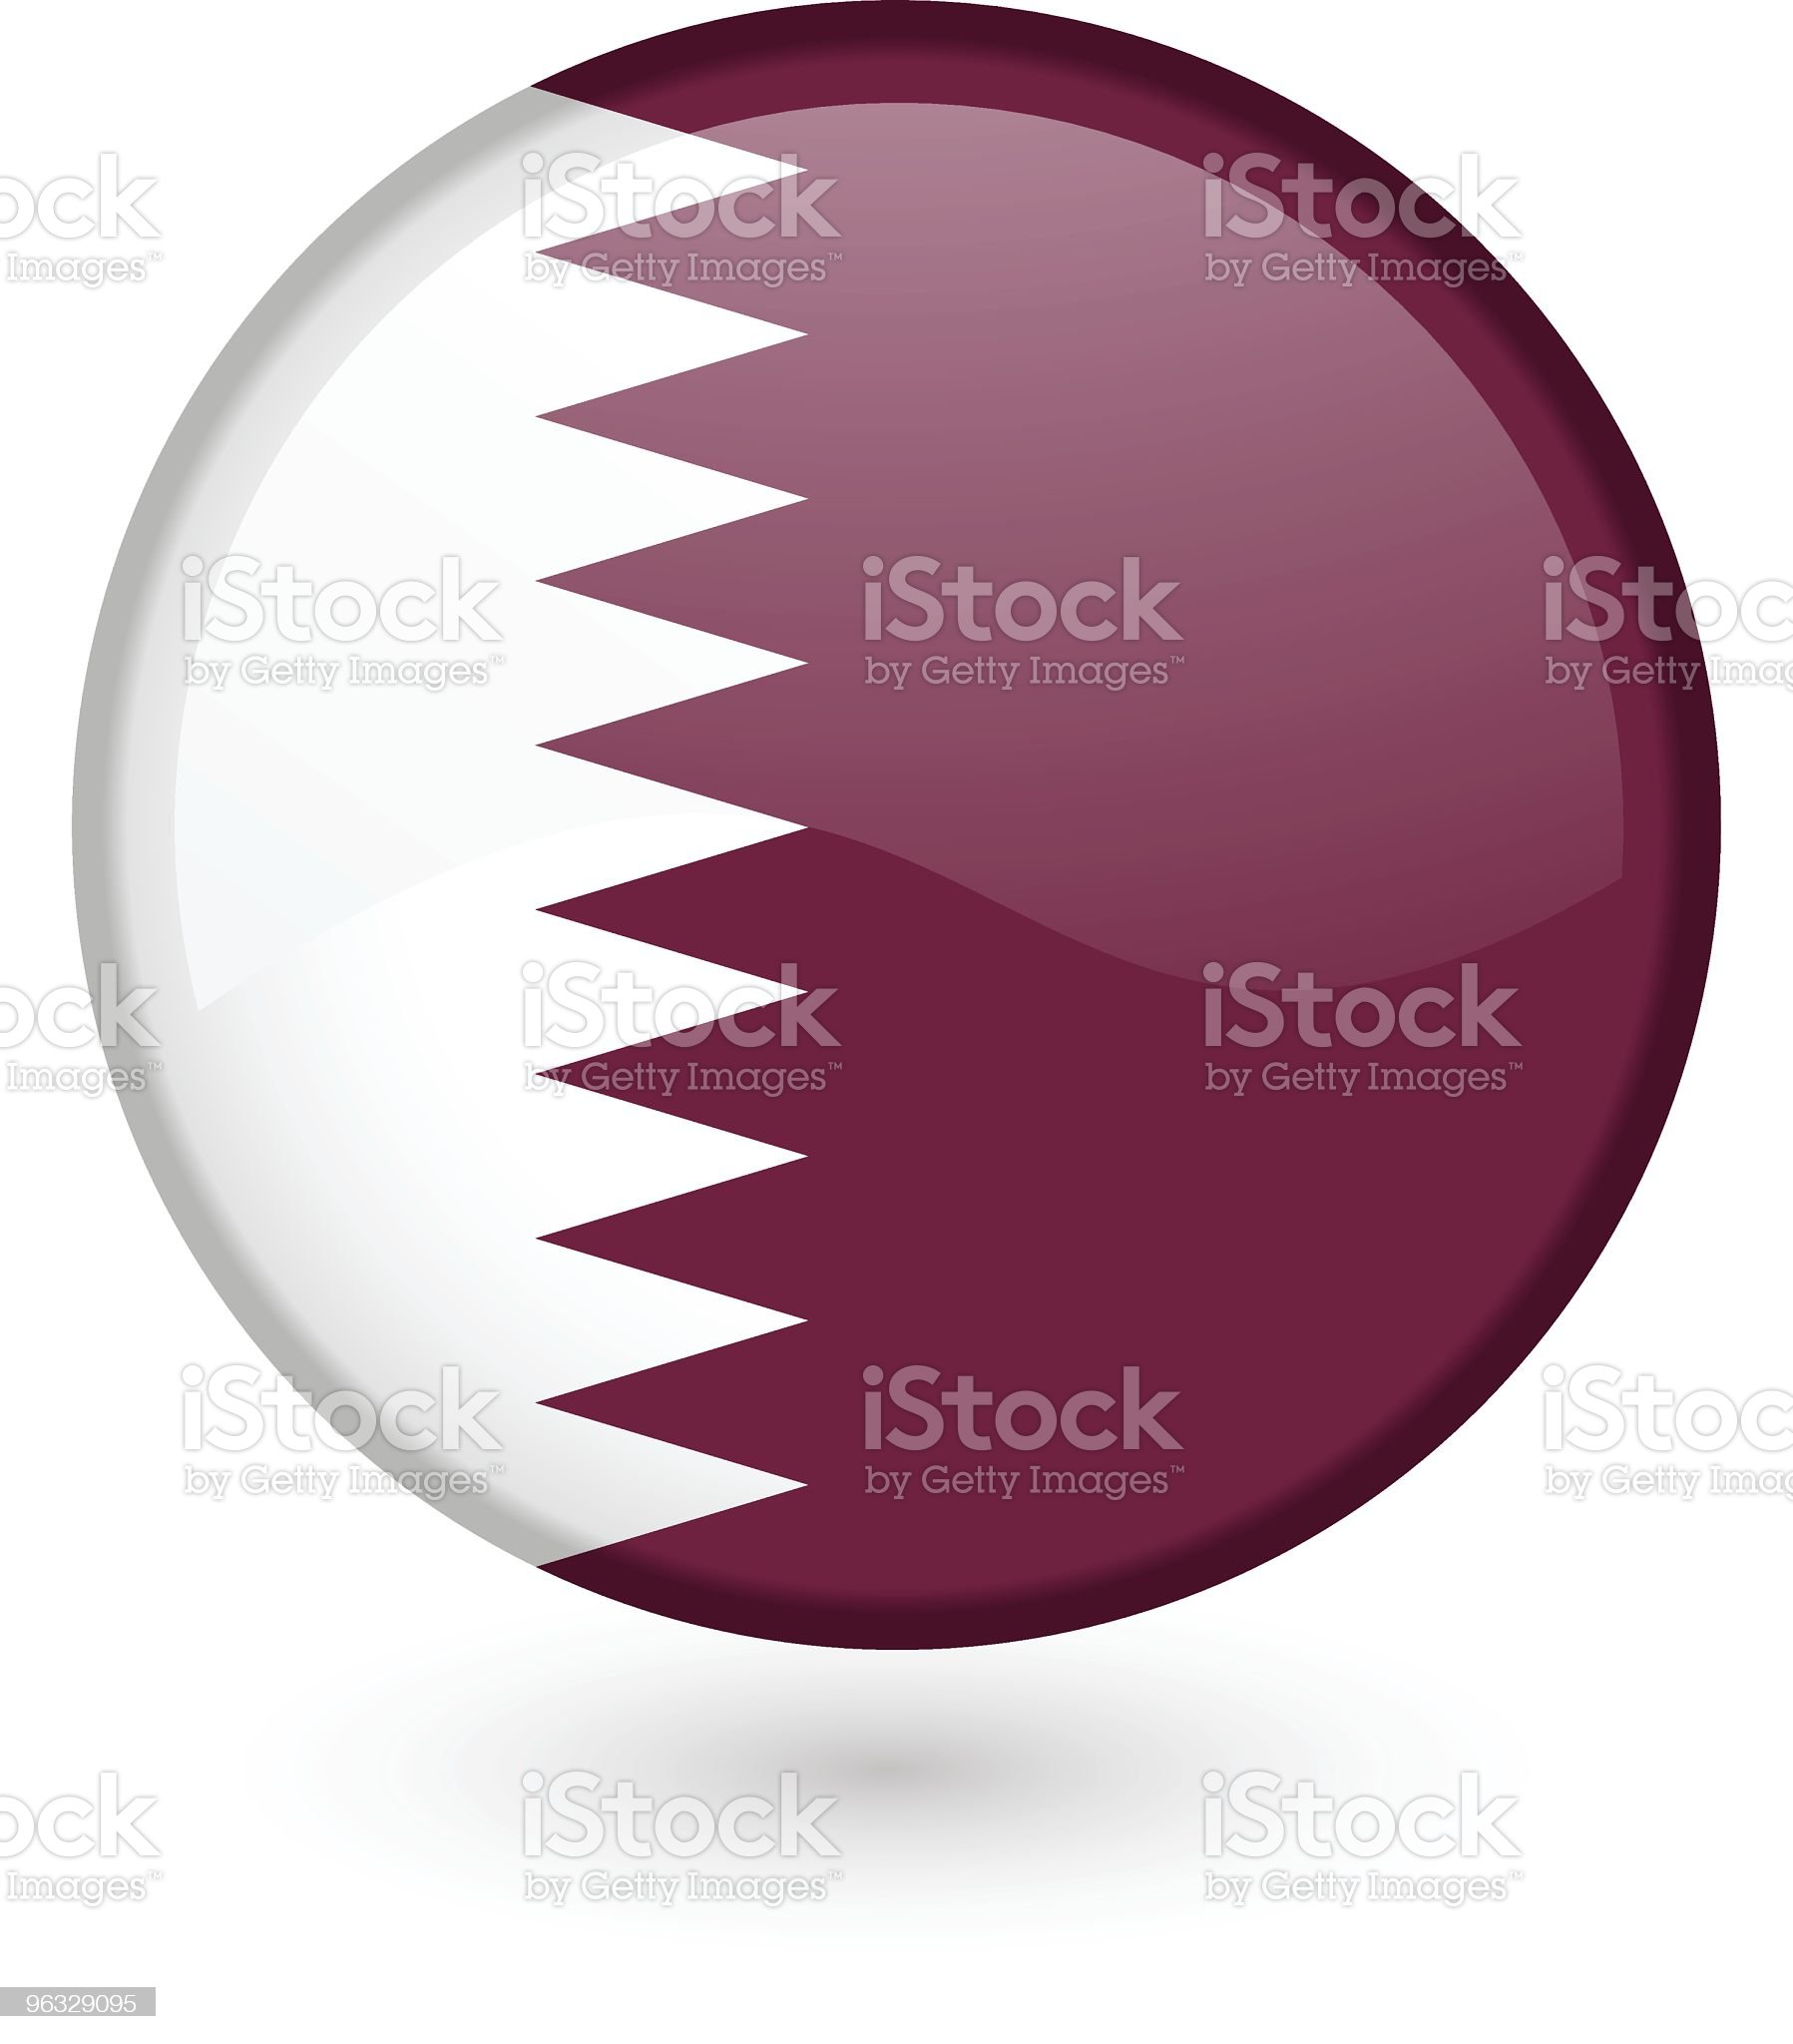 Qatari flag button royalty-free stock vector art